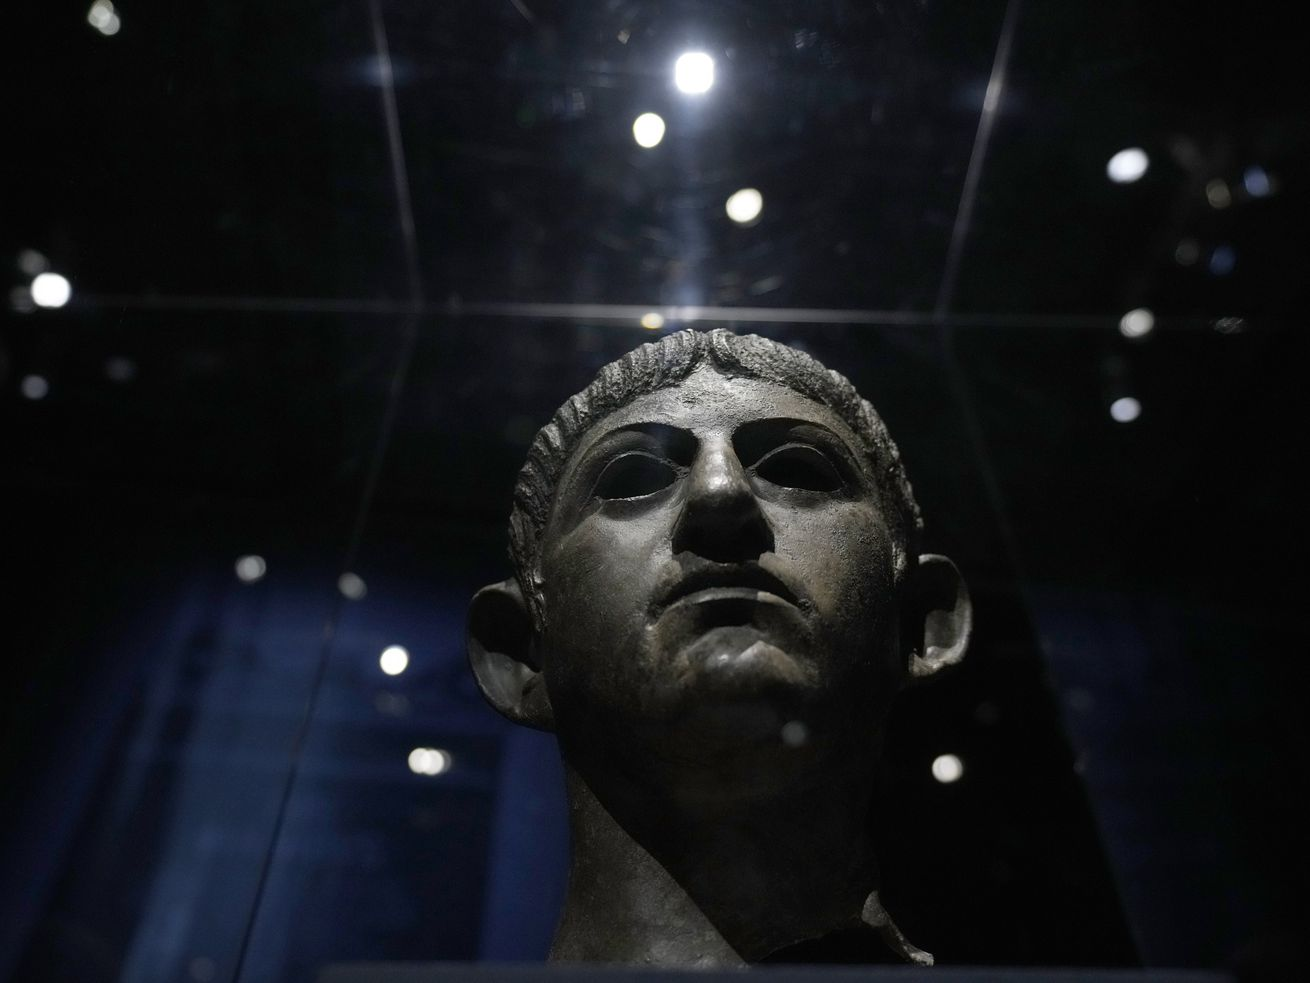 """A bronze head of Roman emperor Nero dating from around AD 54-61 and found in the River Alde at Rendham in Suffolk, eastern England, is displayed in """"Nero: The Man Behind the Myth"""" exhibition at the British Museum in London."""